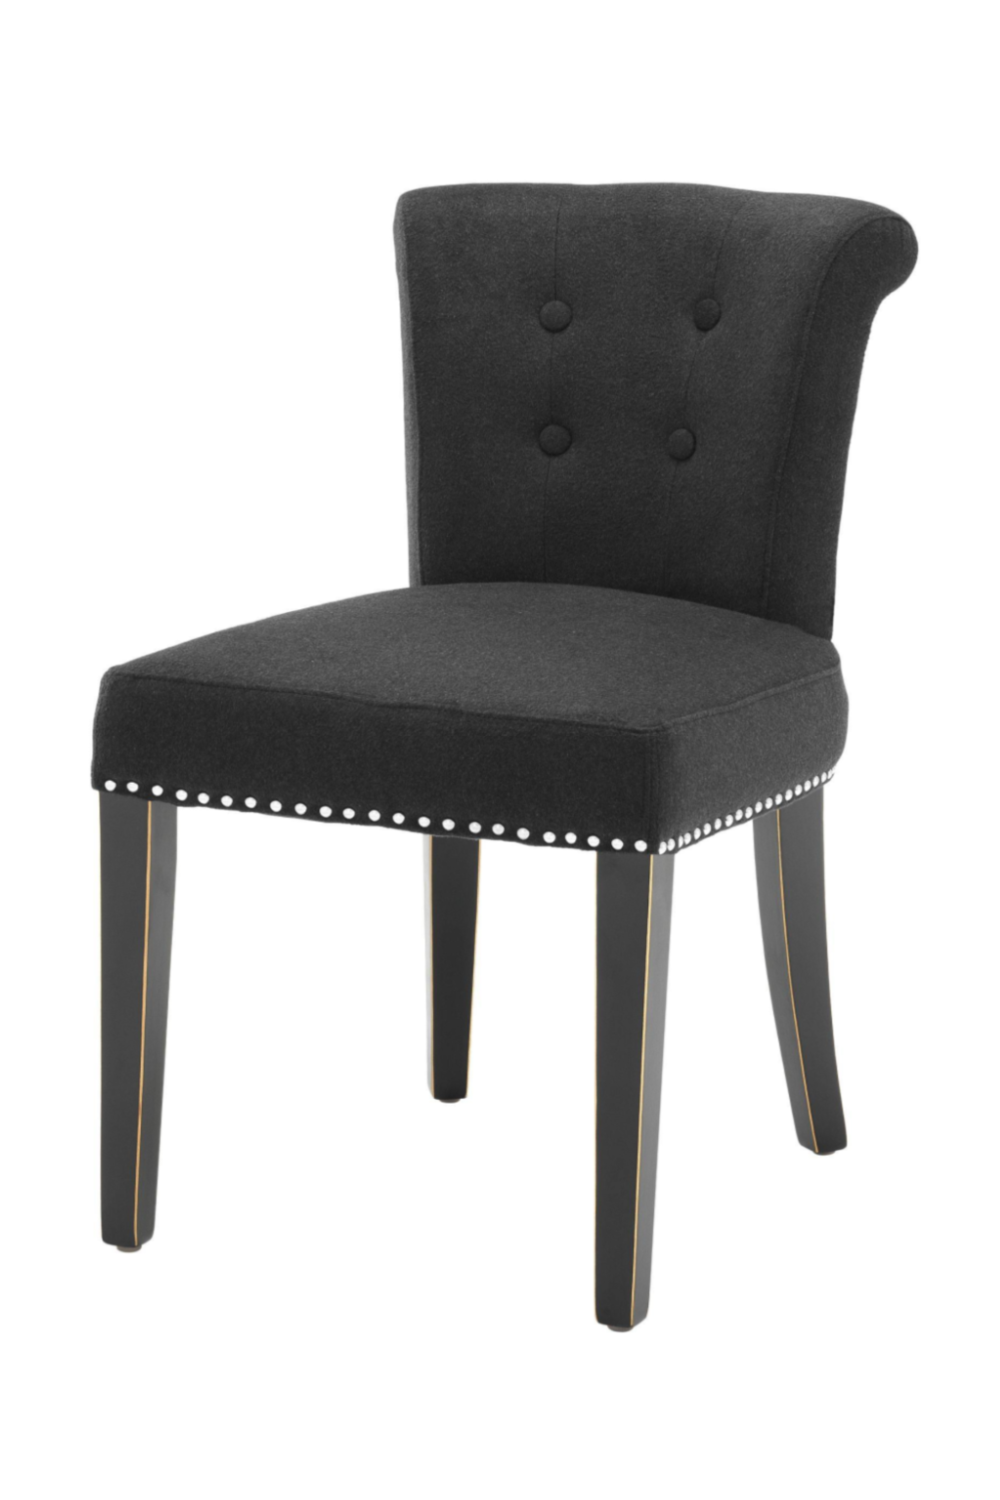 Black Dining Chair | Eichholtz Key Largo | #1 Eichholtz Retailer